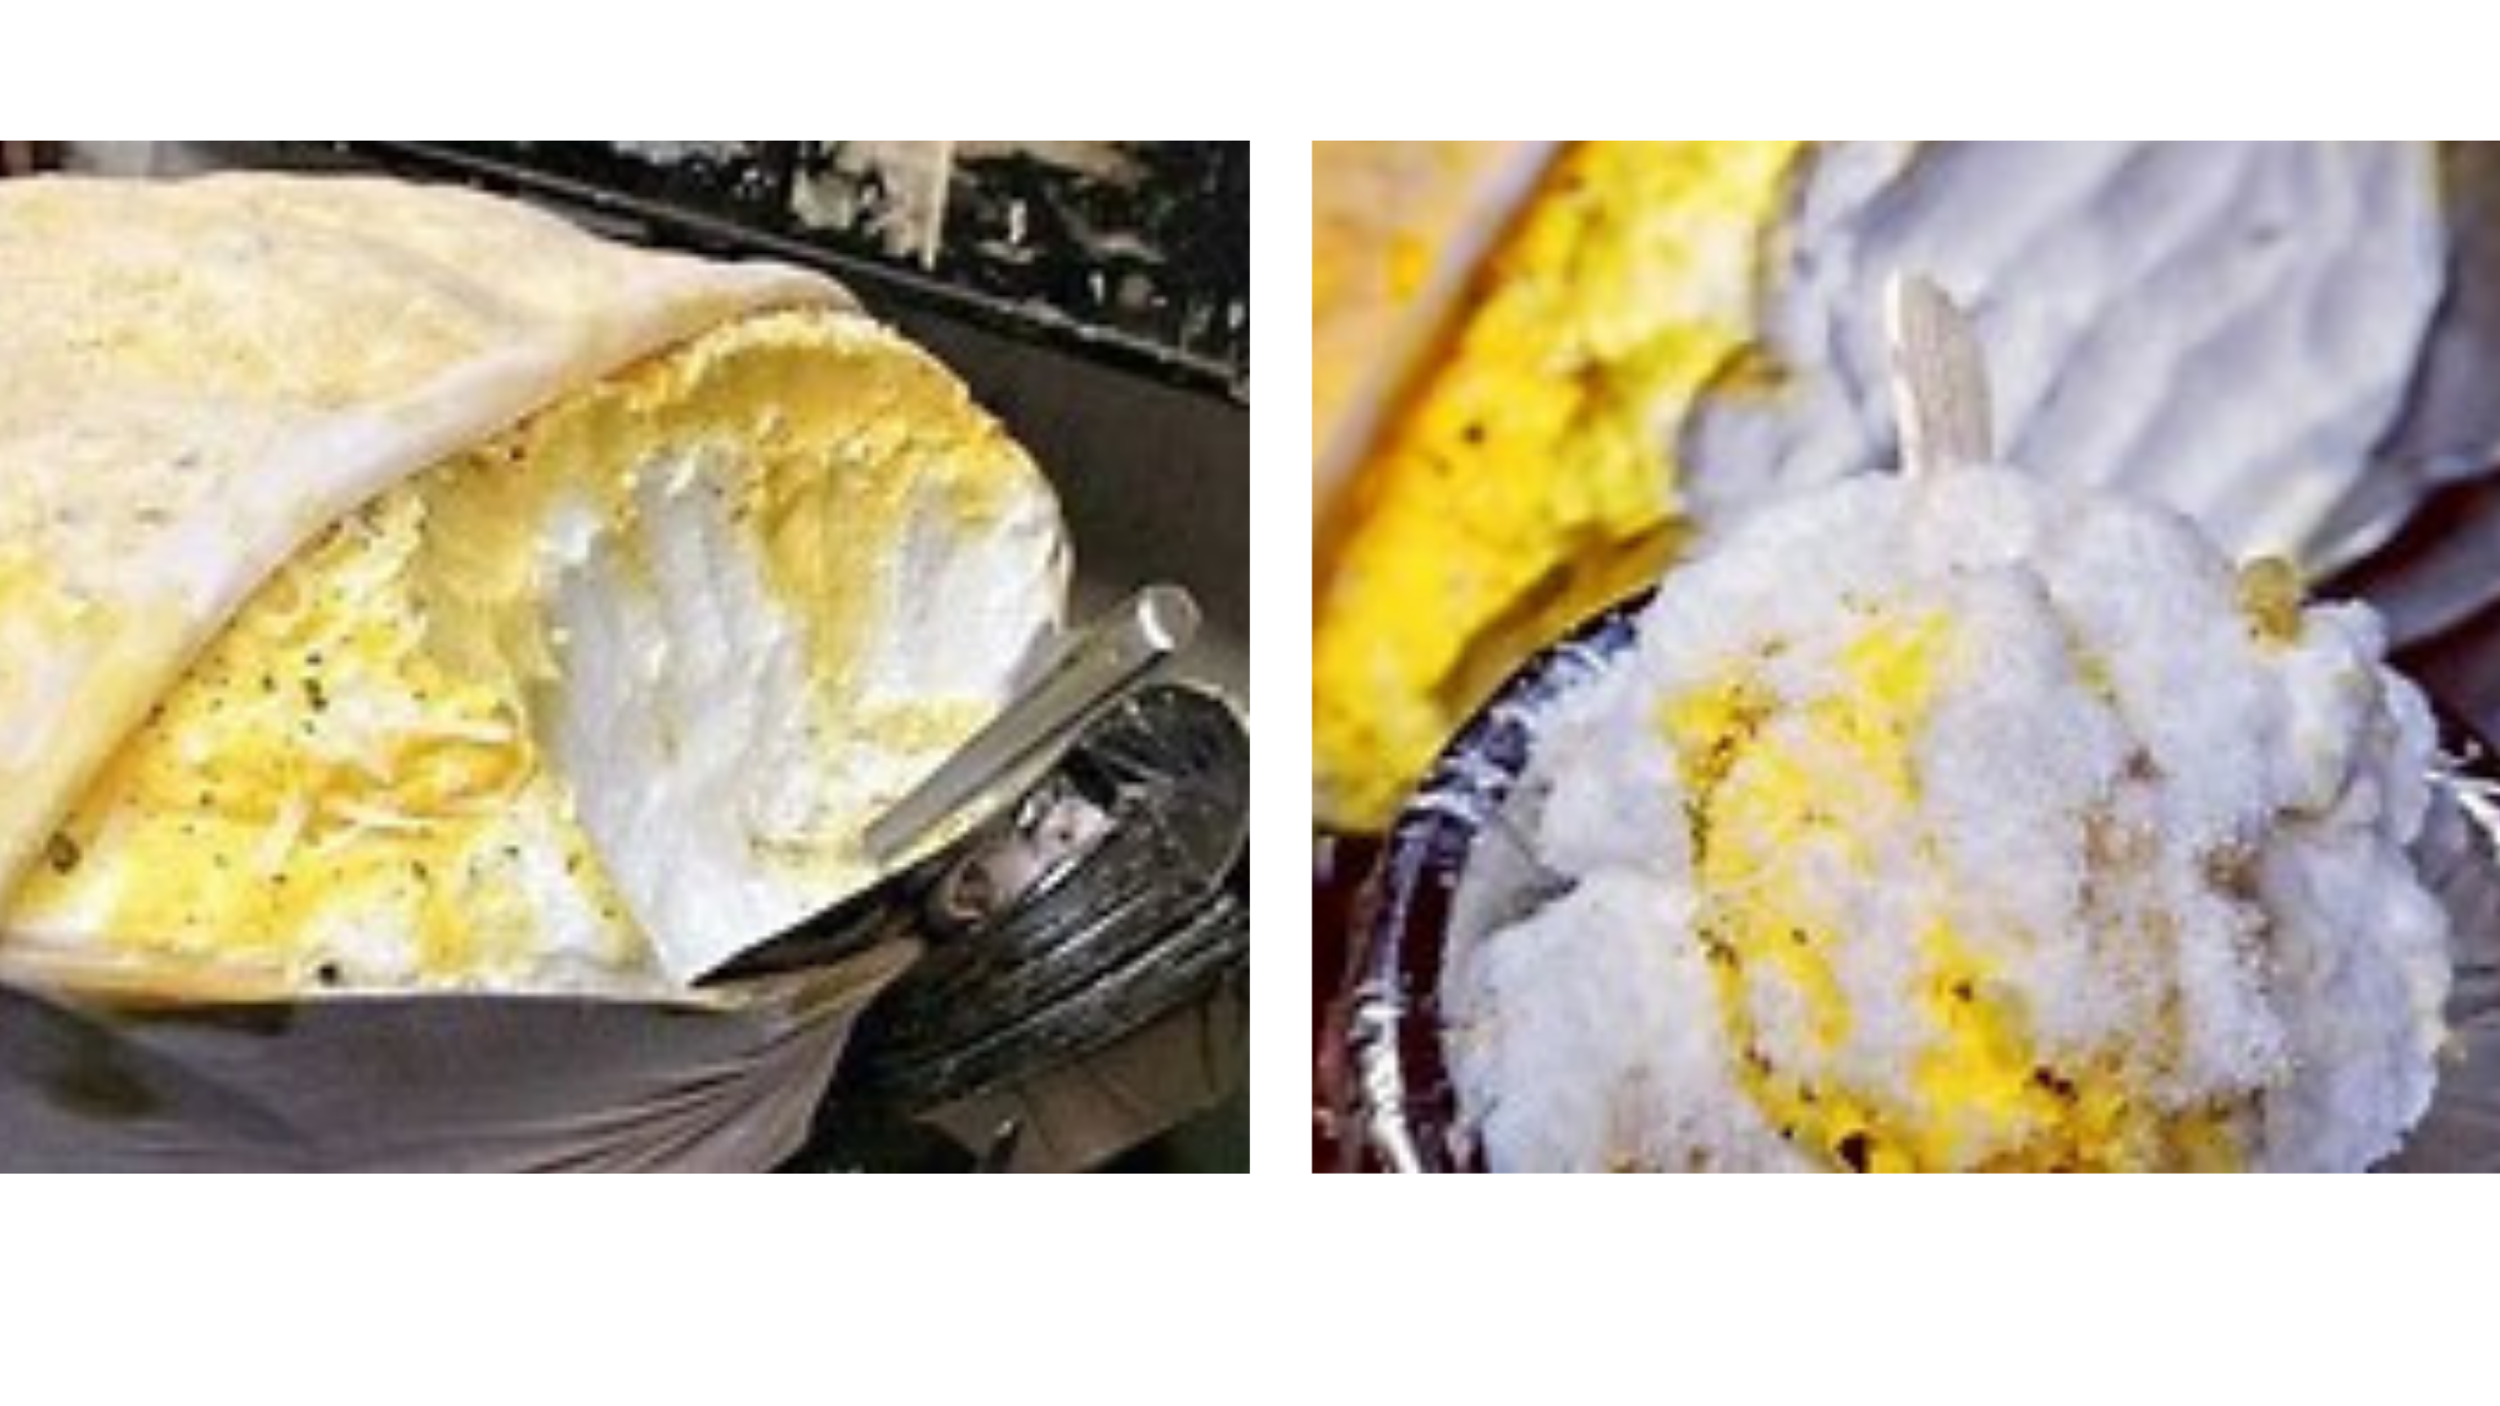 The Indian dessert, Daulat ki Chaat,are scooped out to make Individual portions.